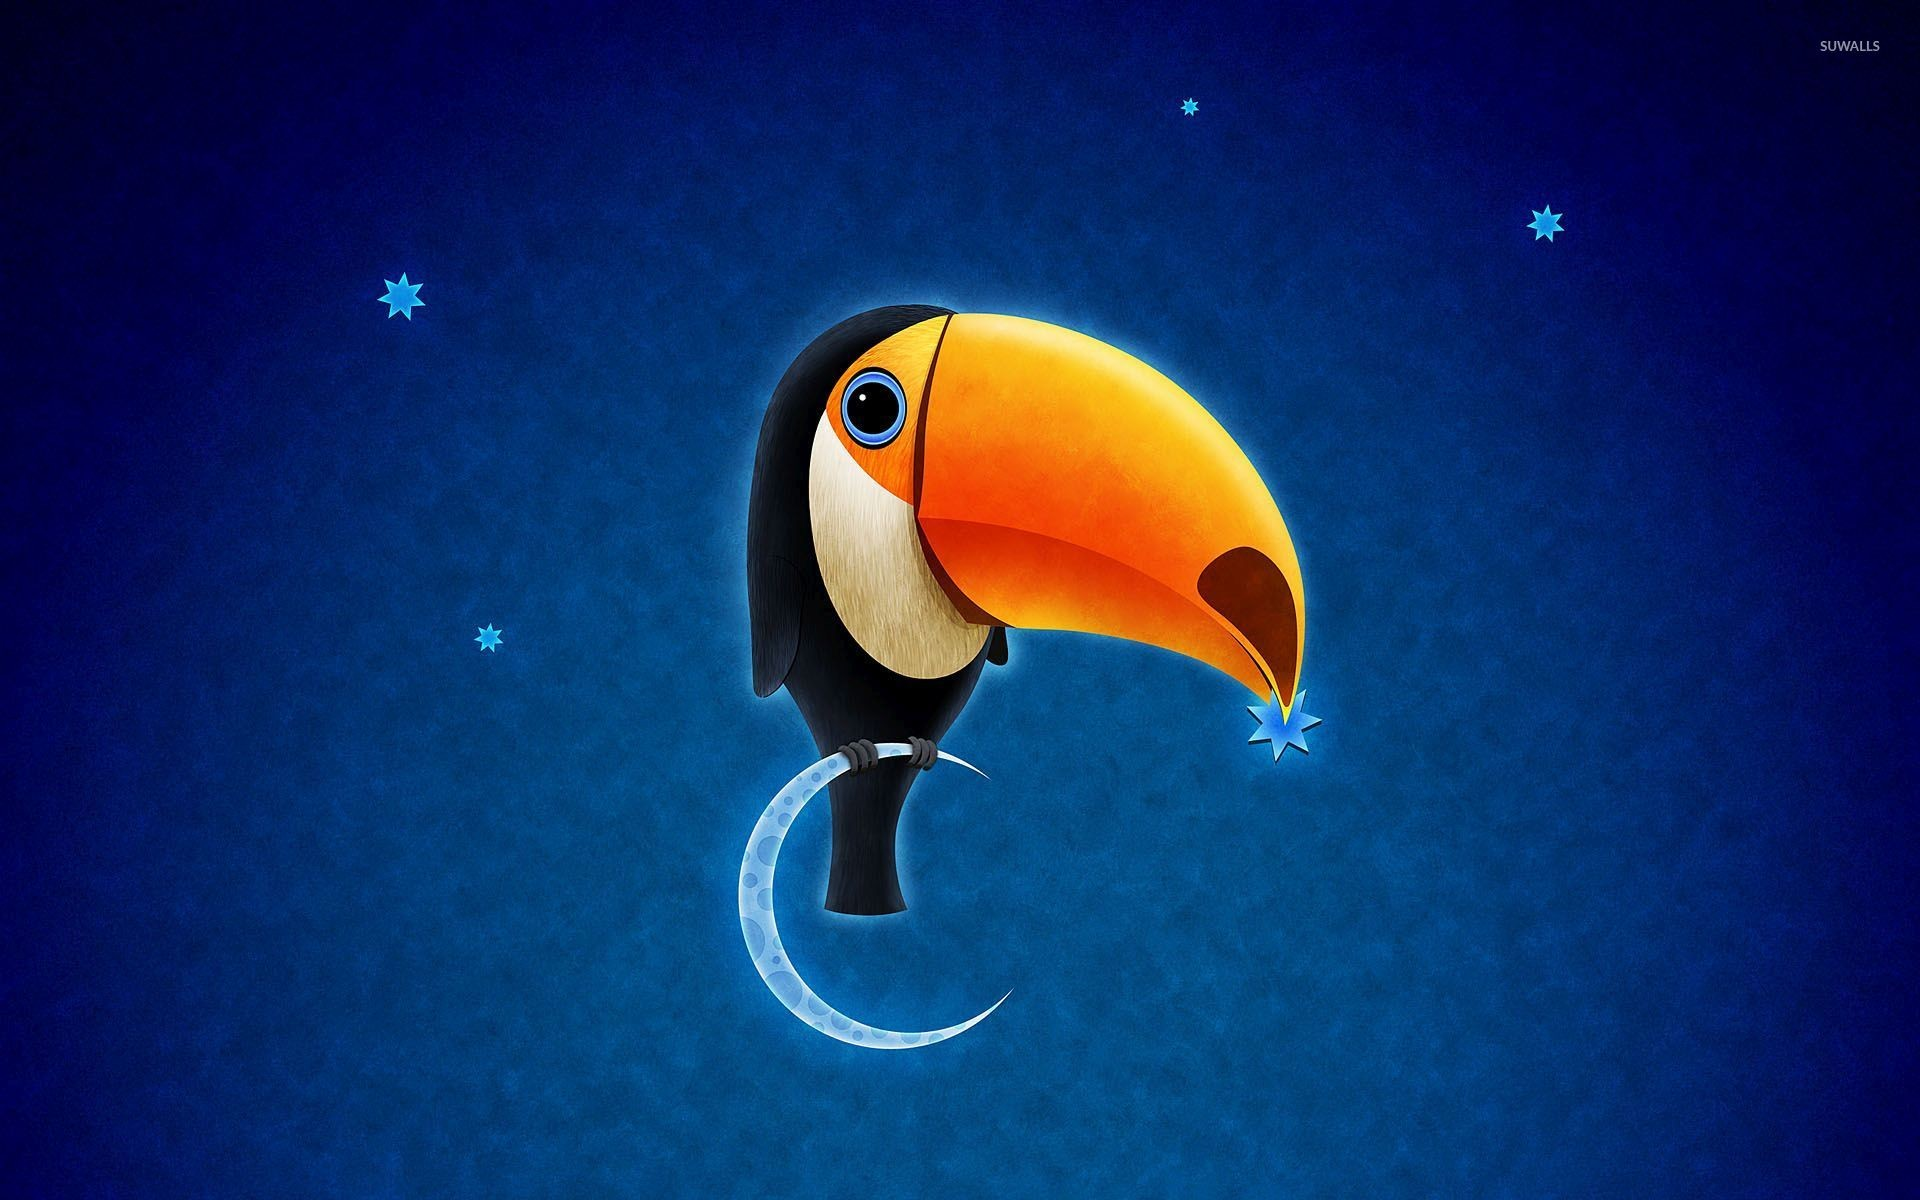 1920x1200 Toucan on the moon wallpaper